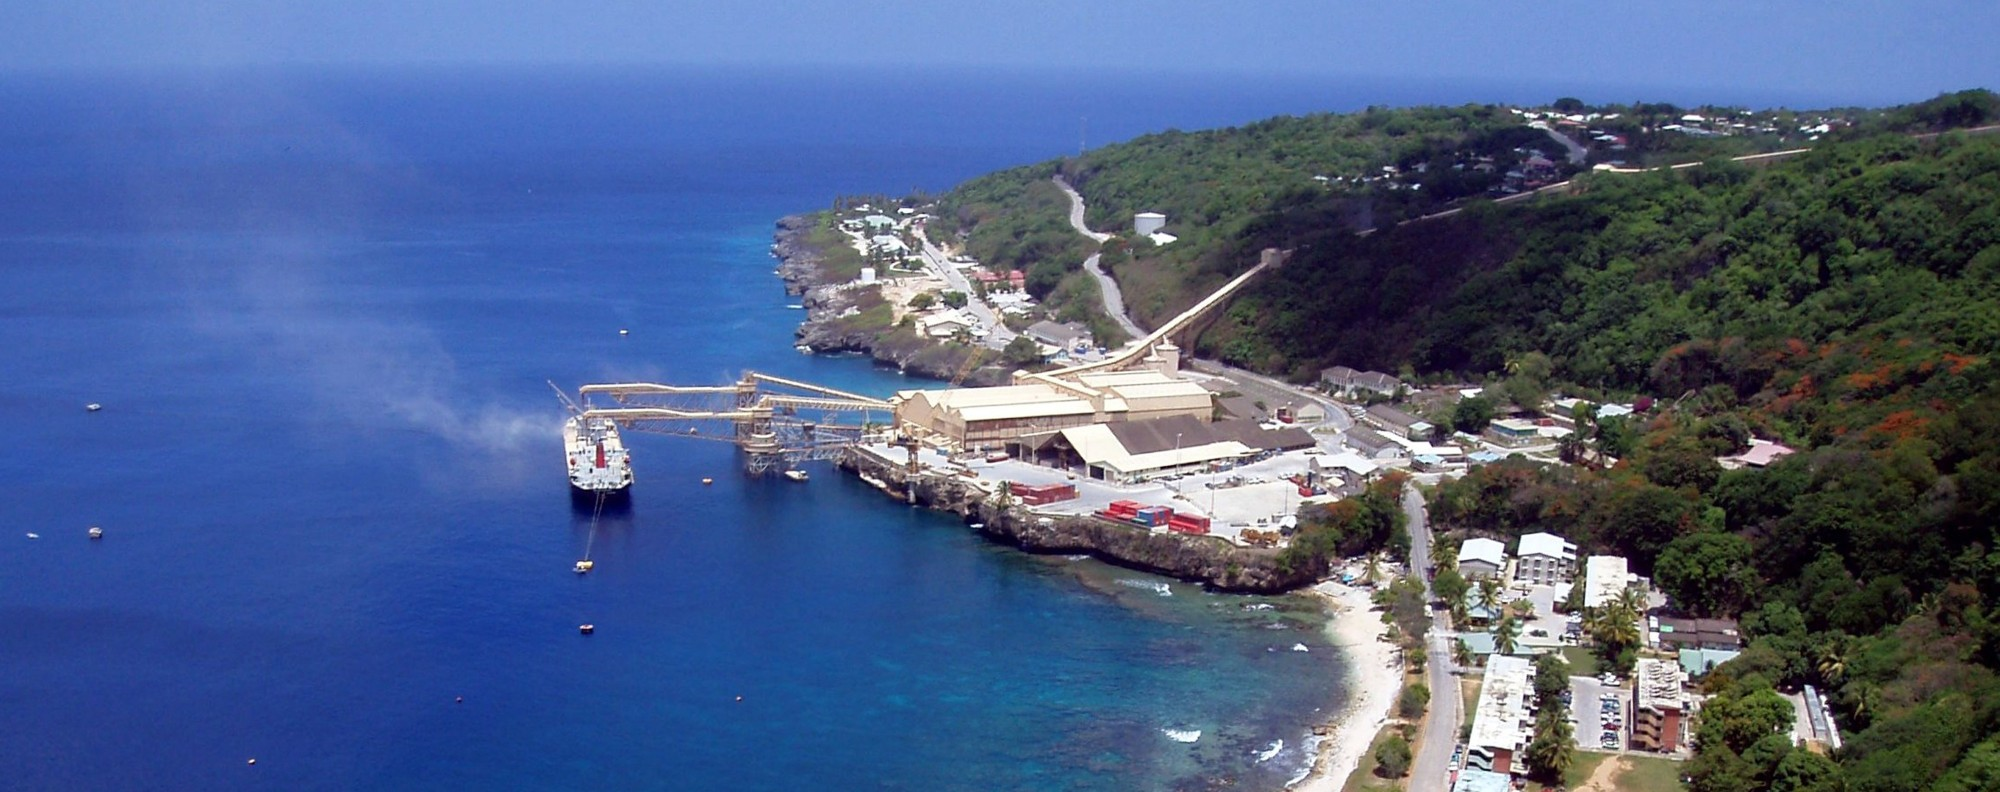 Phosphate-processing plants dominate Christmas Island's harbour.